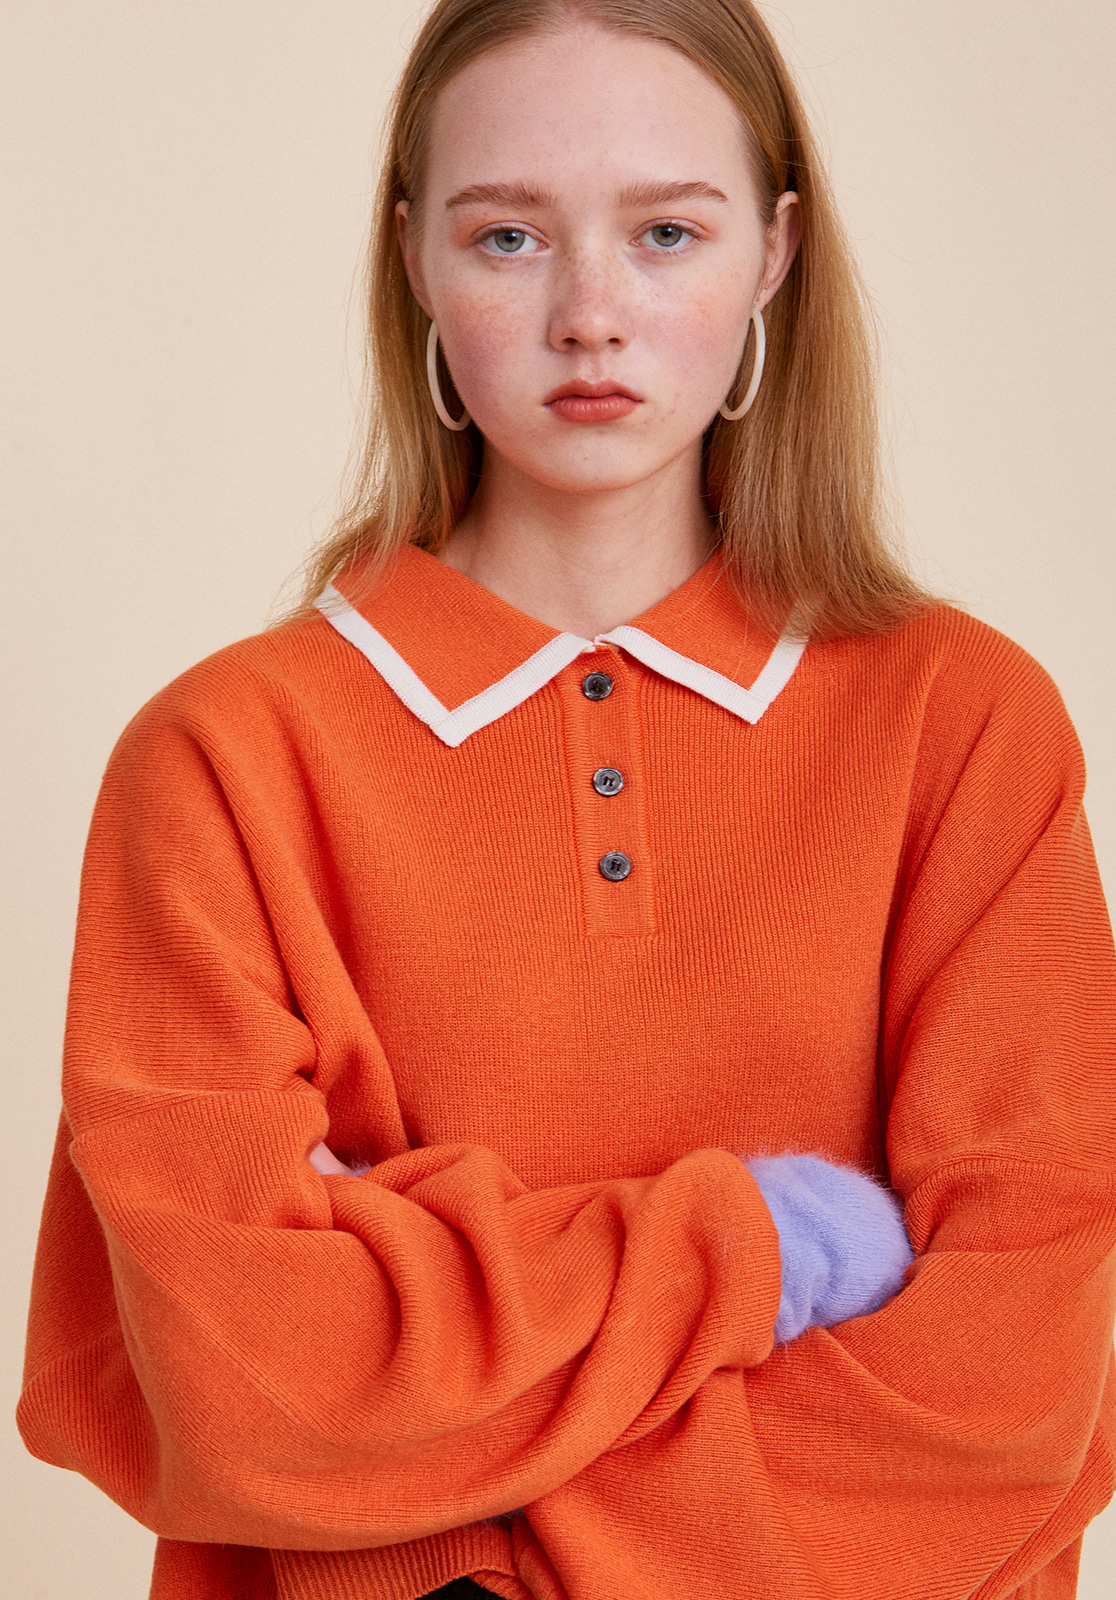 V567 OVER-FIT CROP COLLAR KNIT  ORANGE